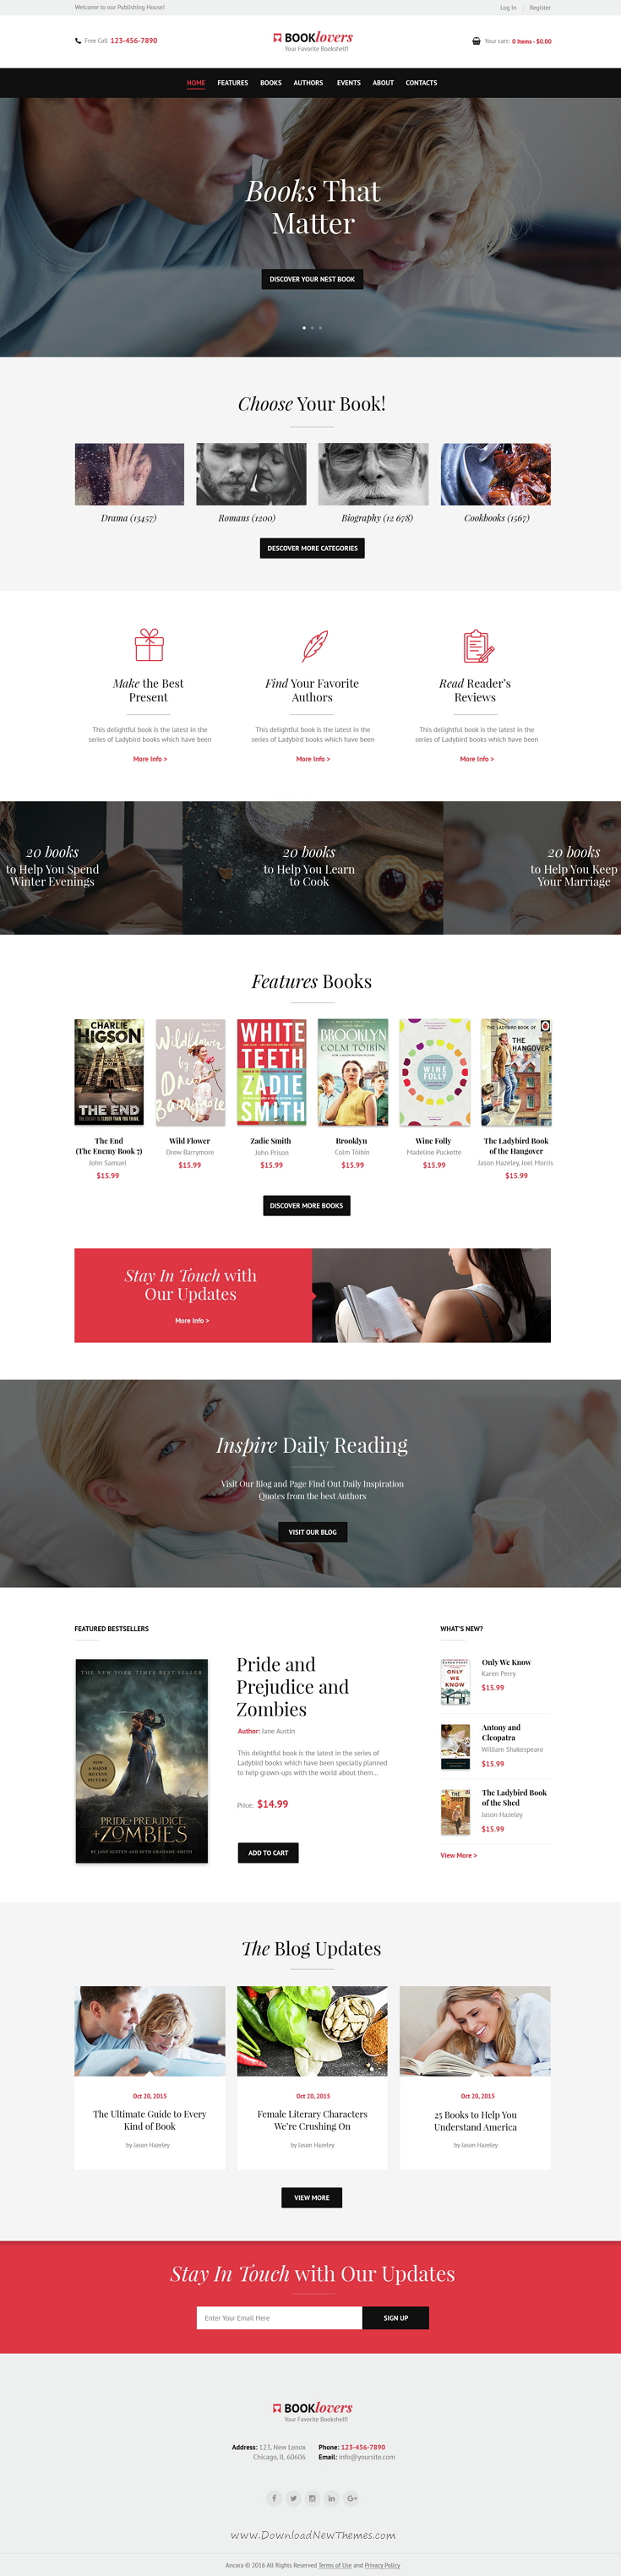 Booklovers - Publishing House & Book Store WordPress Theme ...